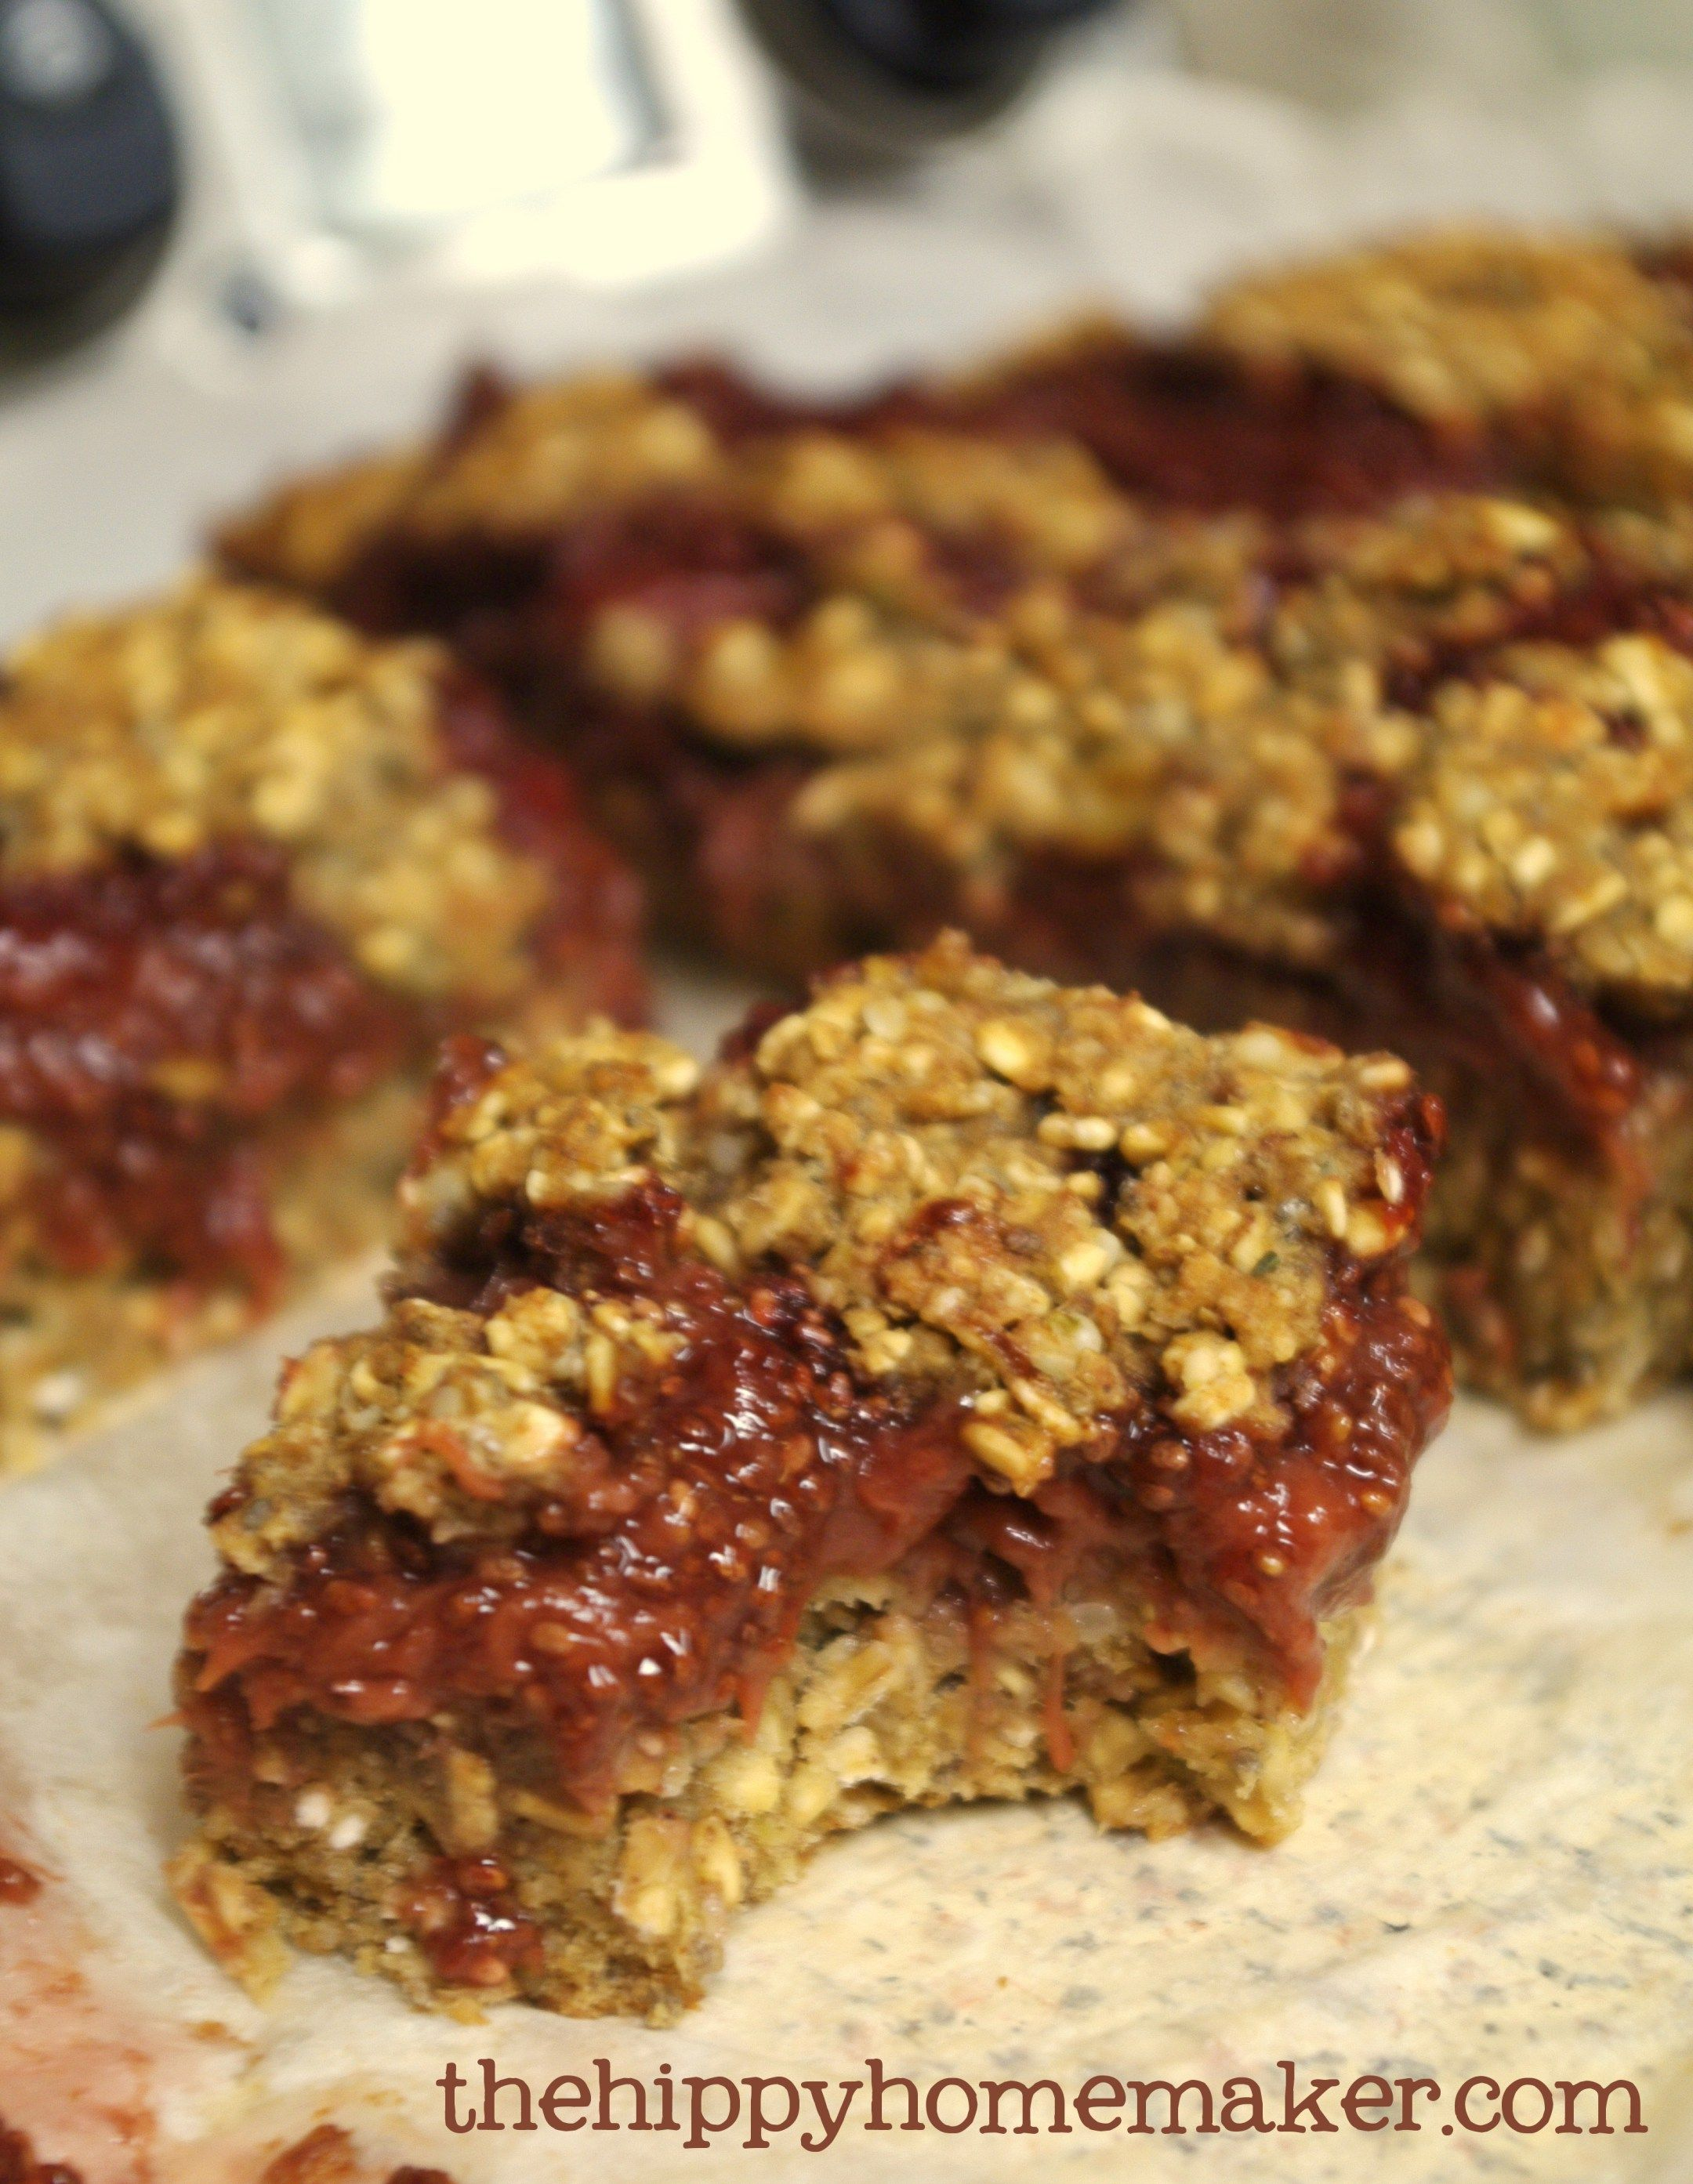 Strawberry Banana Energy Bars Vegan & Gluten-Free great for quick breakfasts, snacks, camping/hiking and more - thehippyhomemaker.com